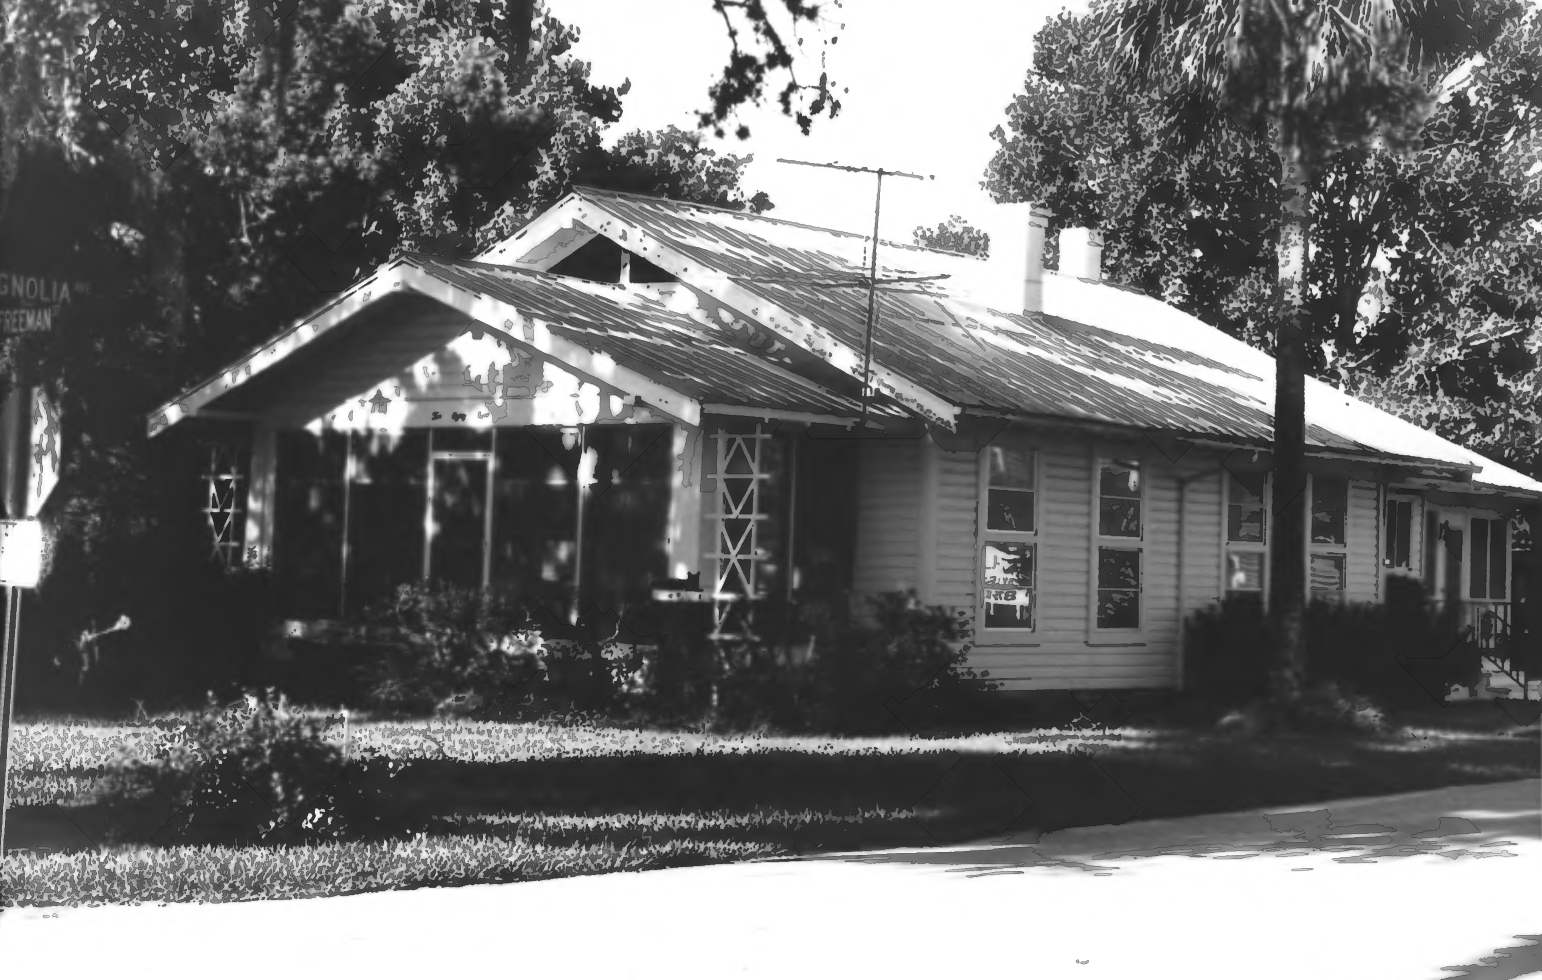 1990, National Register of Historic Places filing.